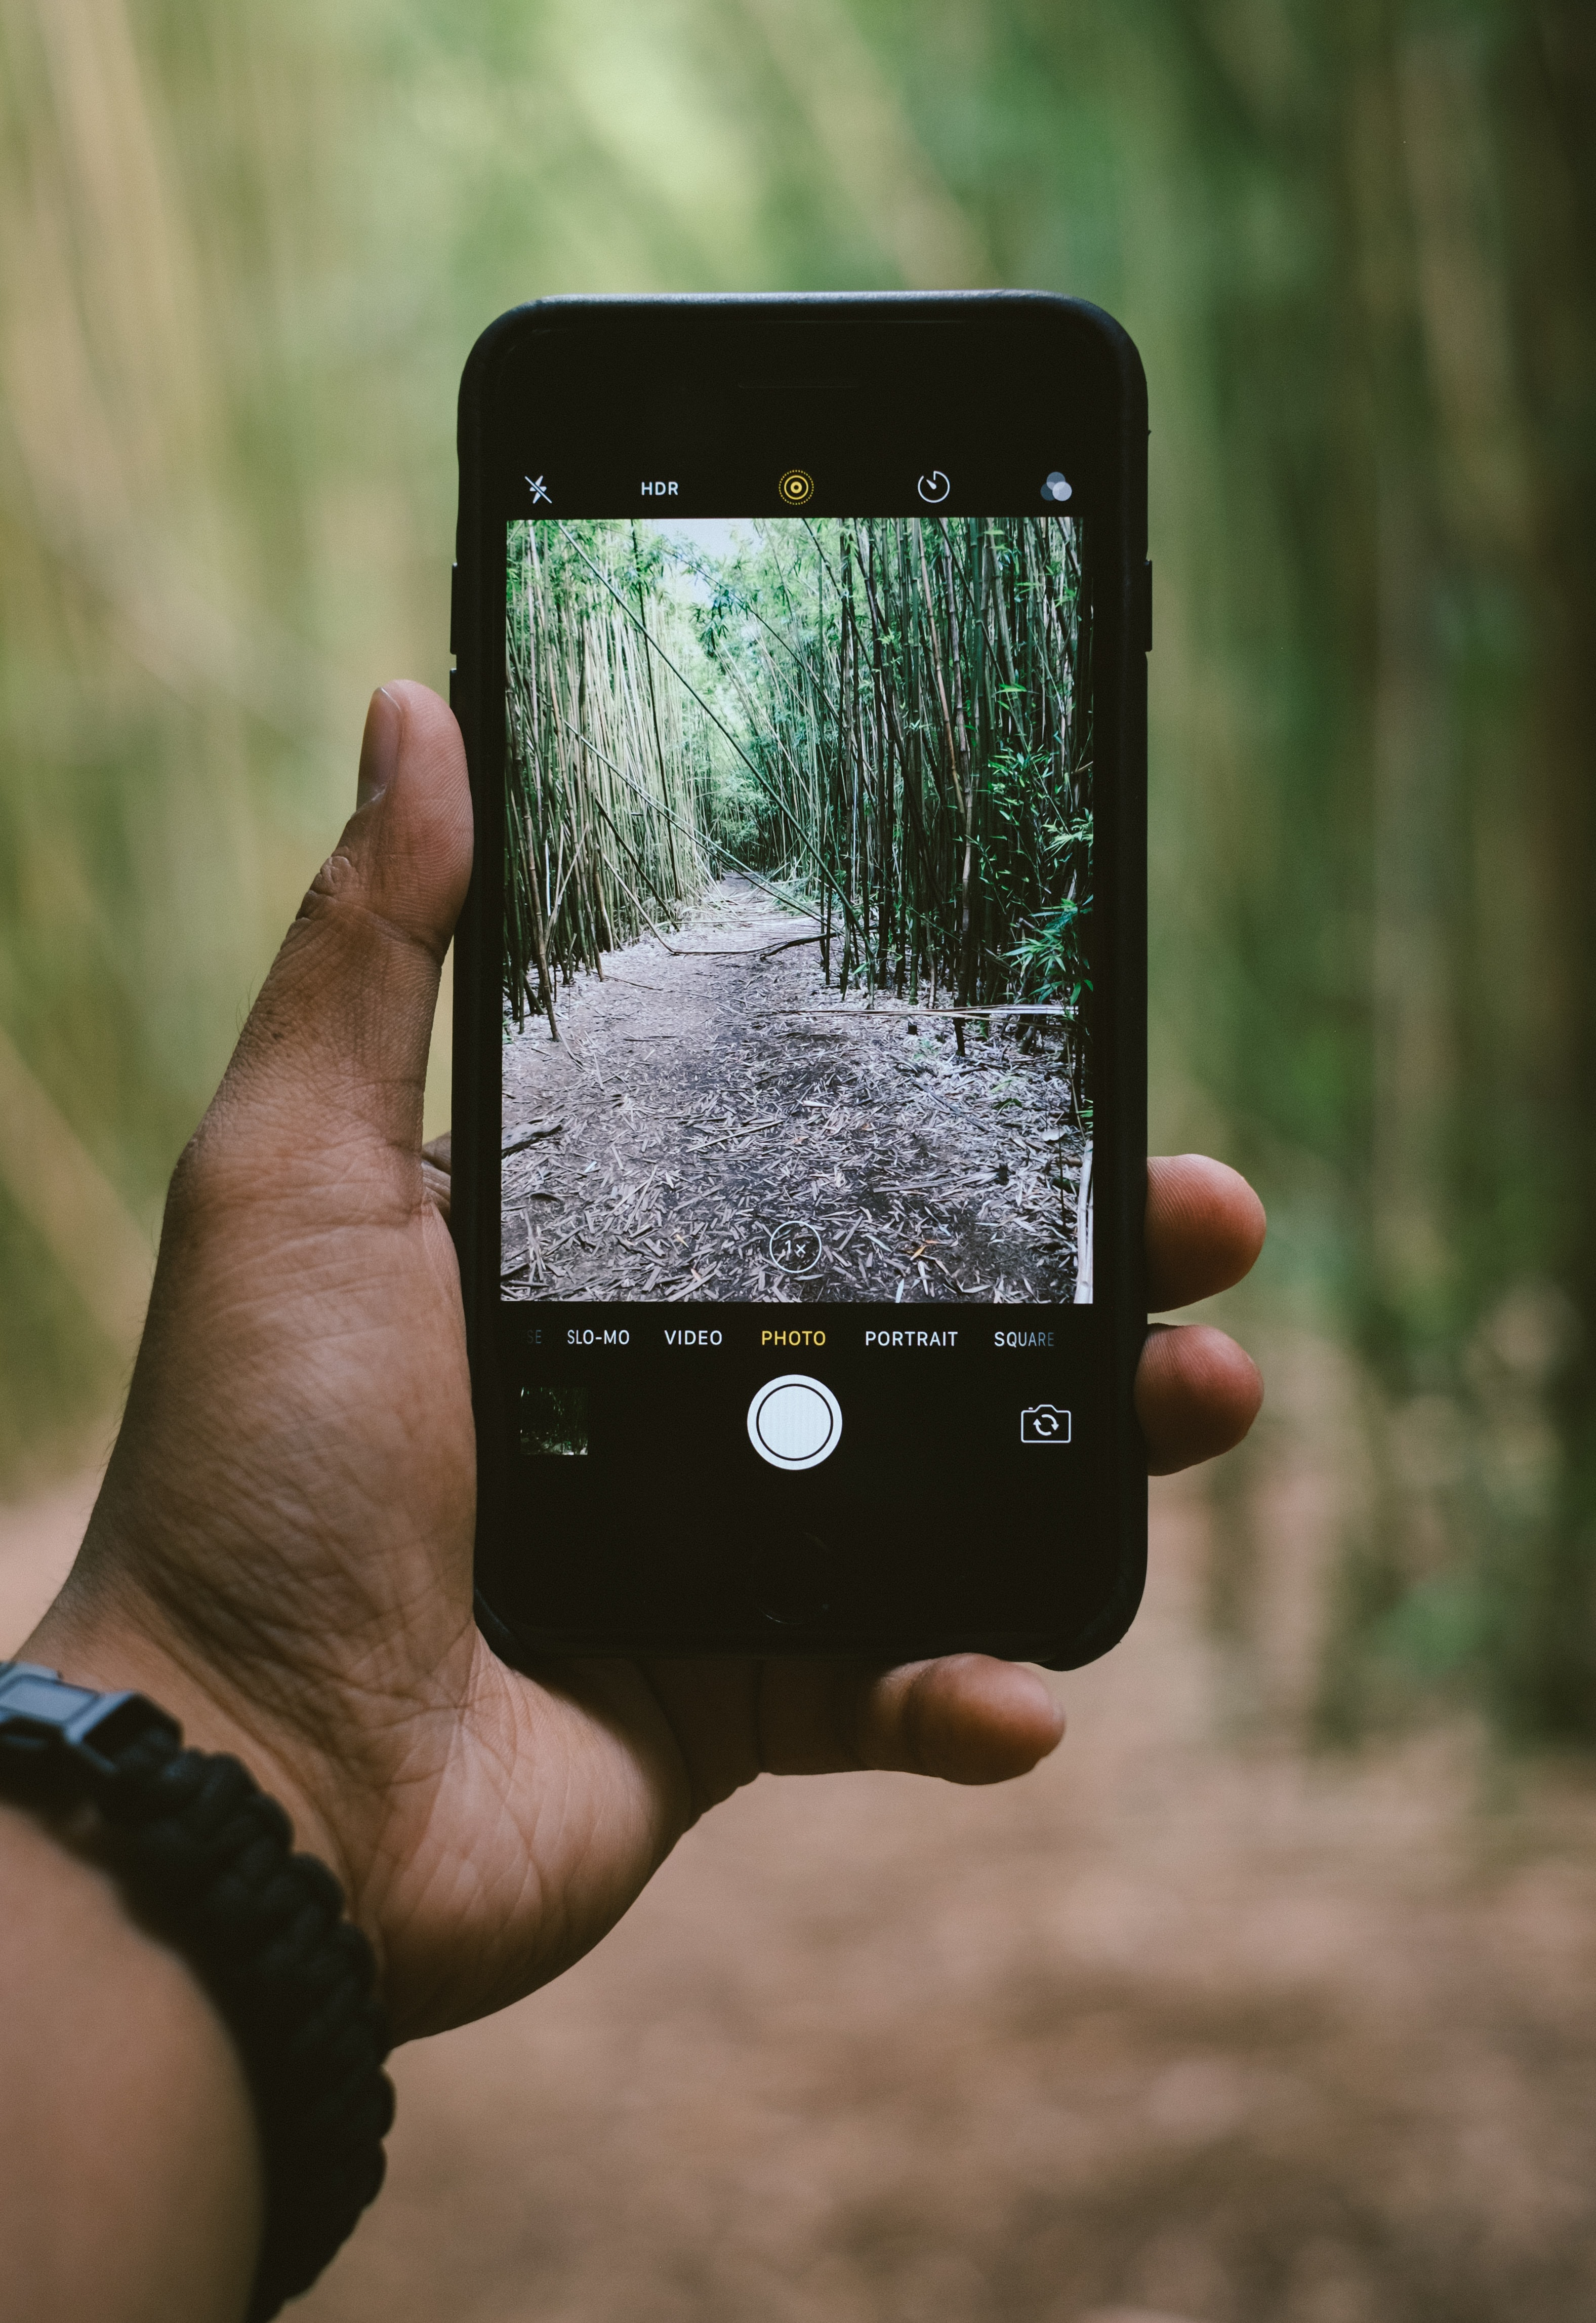 Outstretched hand holding an iPhone with a forest landscape in the viewfinder